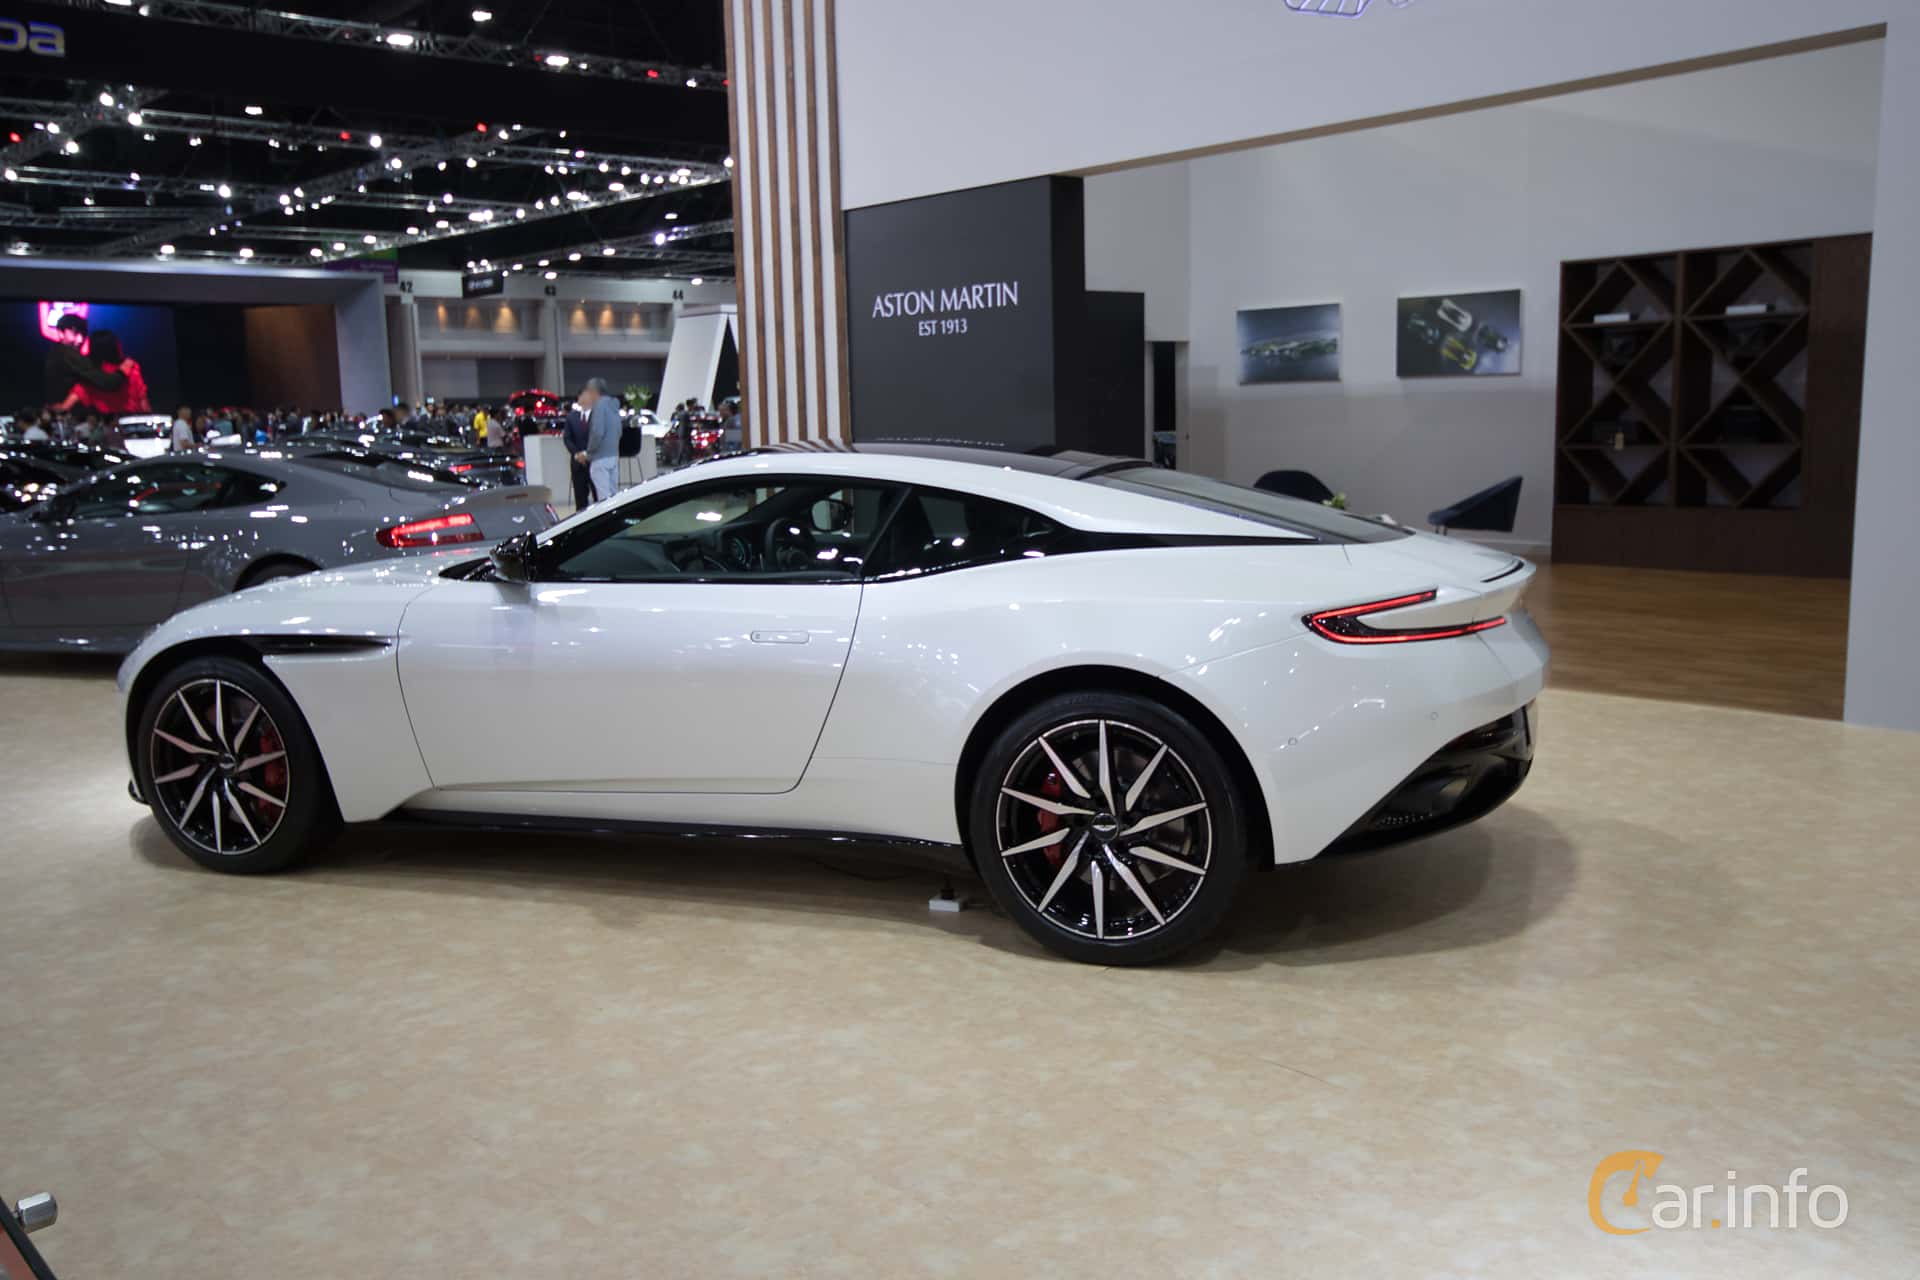 Aston Martin DB11 4.0 V8 Automatic, 510hp, 2019 at Bangkok Motor Show 2019